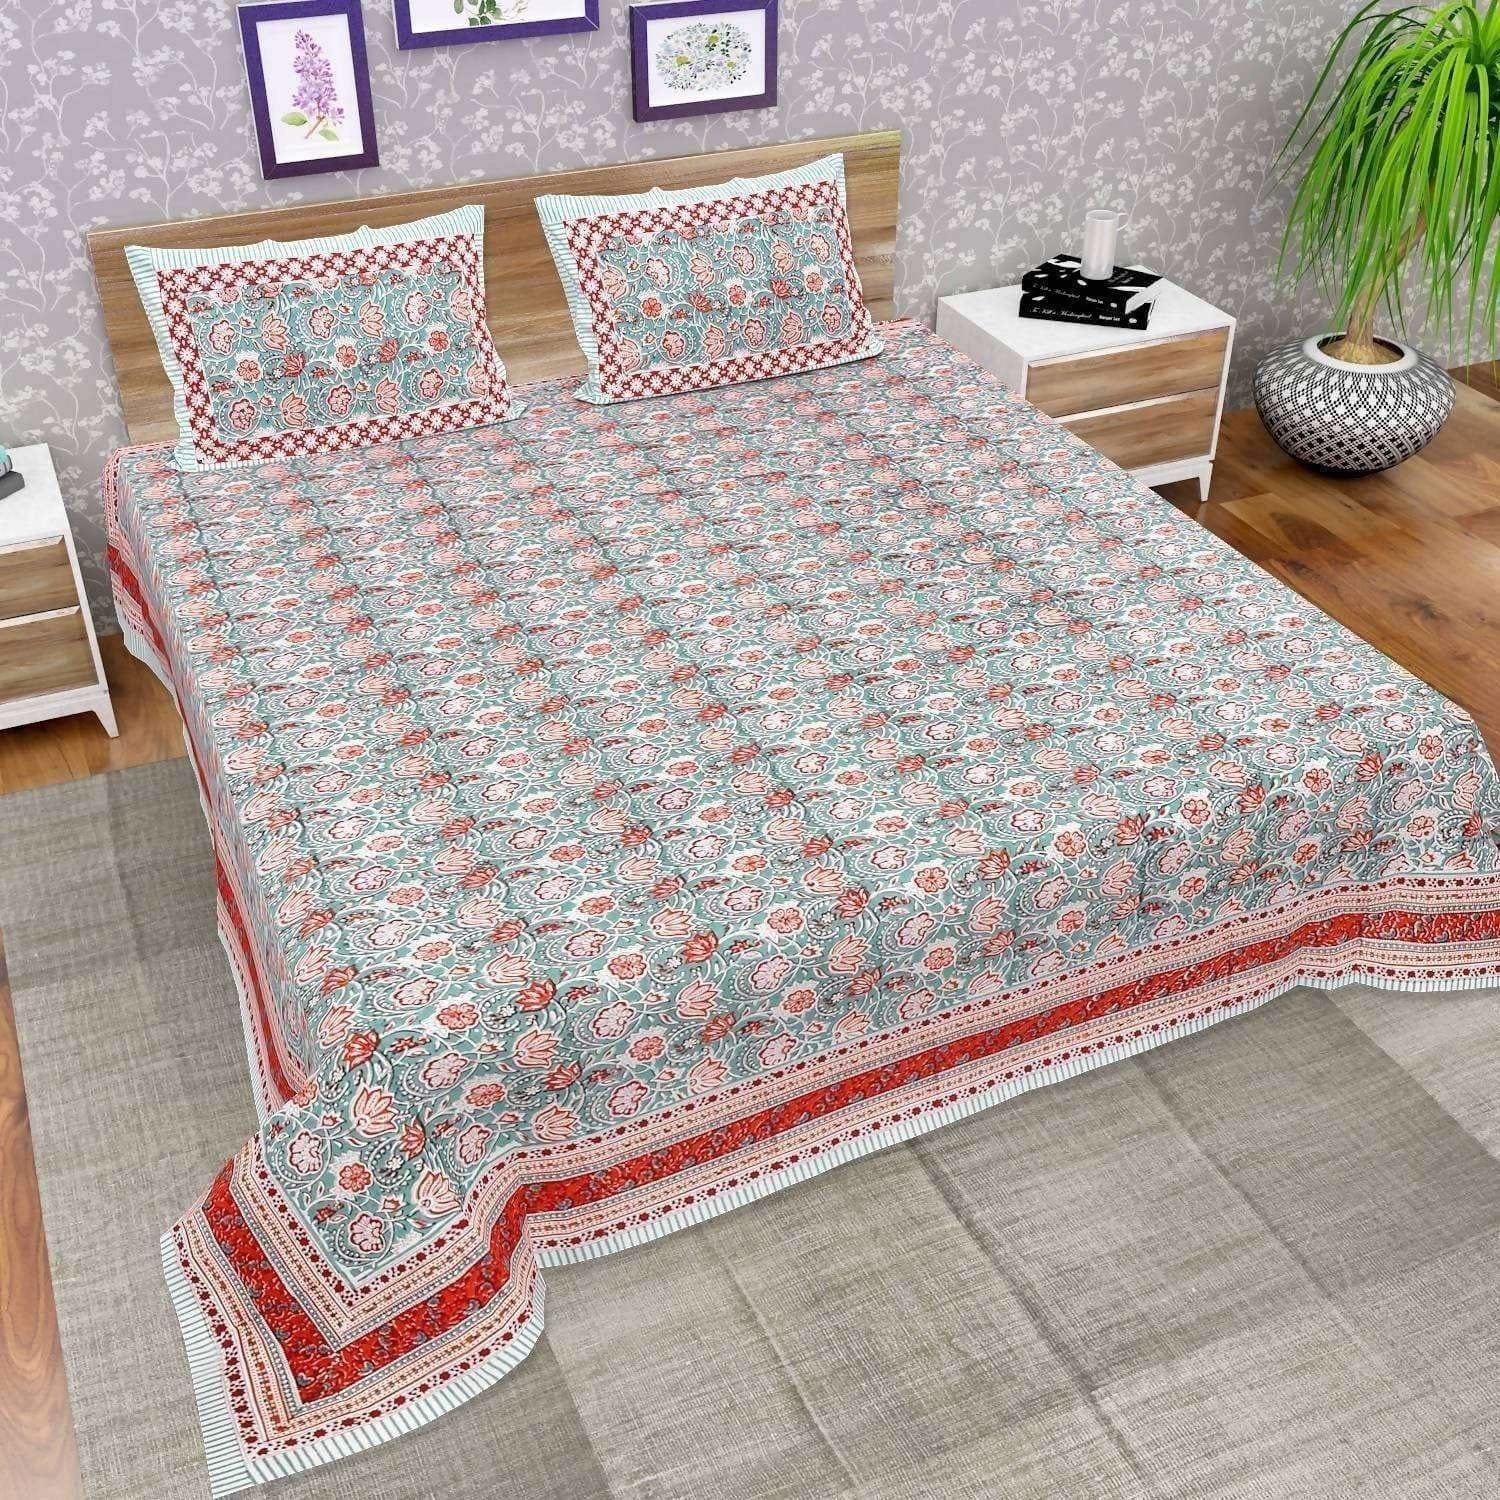 Hand Printed Jaipuri Double/Queen 230x270 Cms Bedsheet with 2 Pillow Covers